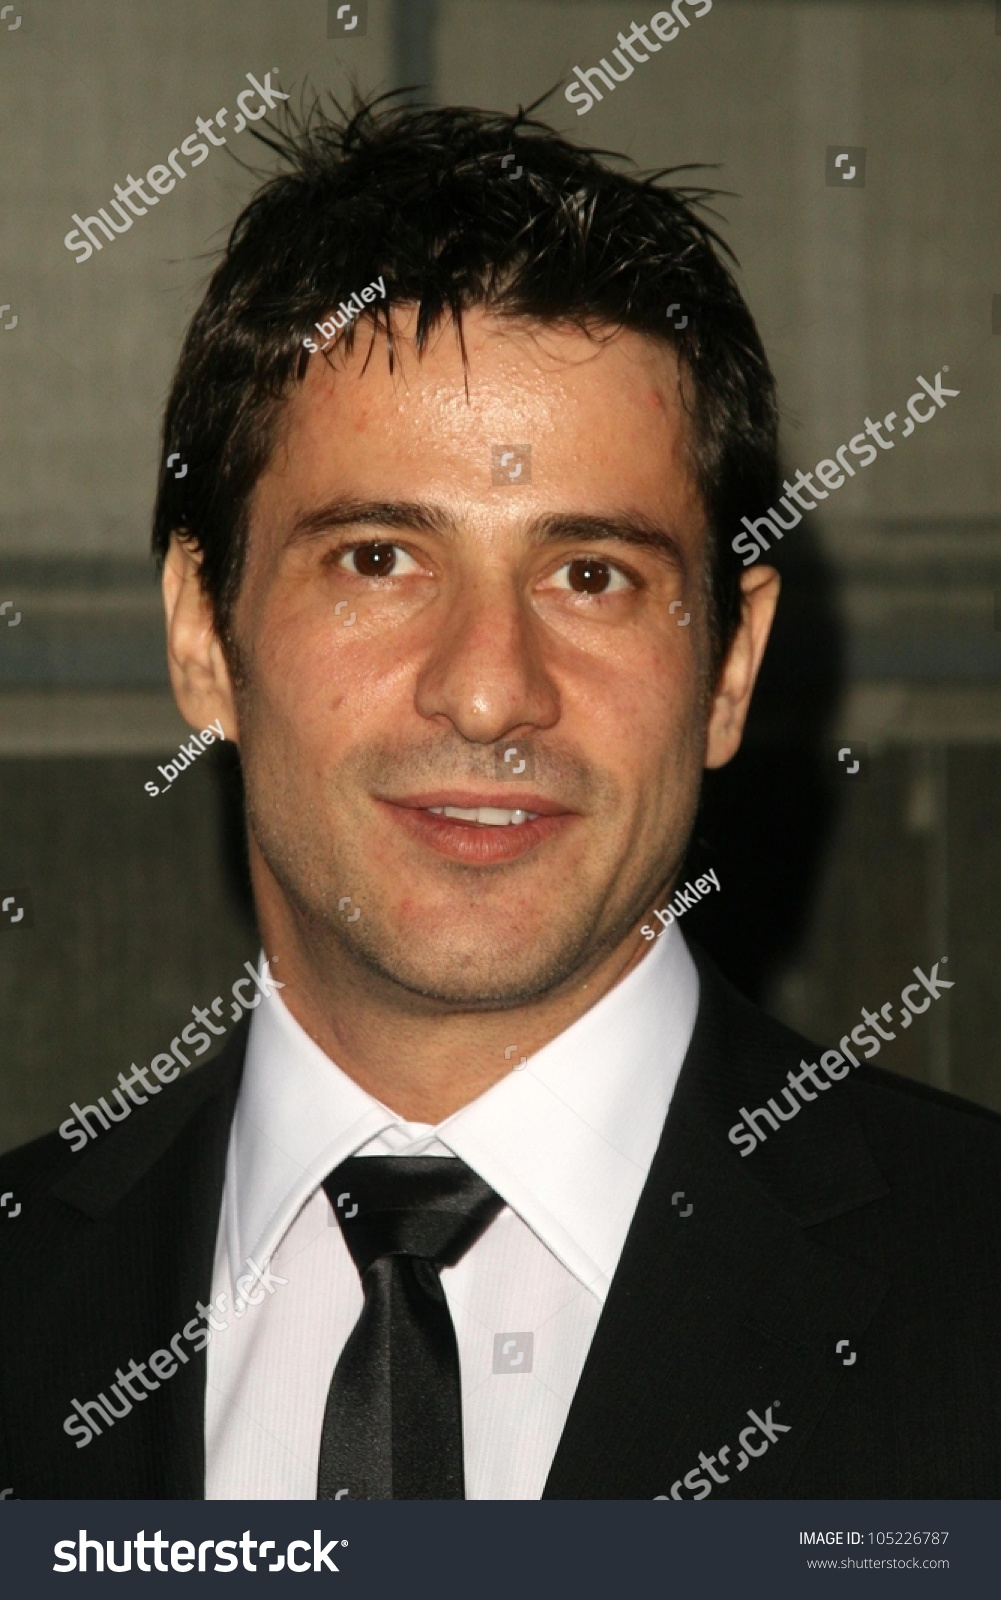 Alexis Georgoulis Los Angeles Premiere My Stock Photo Edit Now 105226787 In 1993 started studies in the national technical university of. https www shutterstock com image photo alexis georgoulis los angeles premiere my 105226787